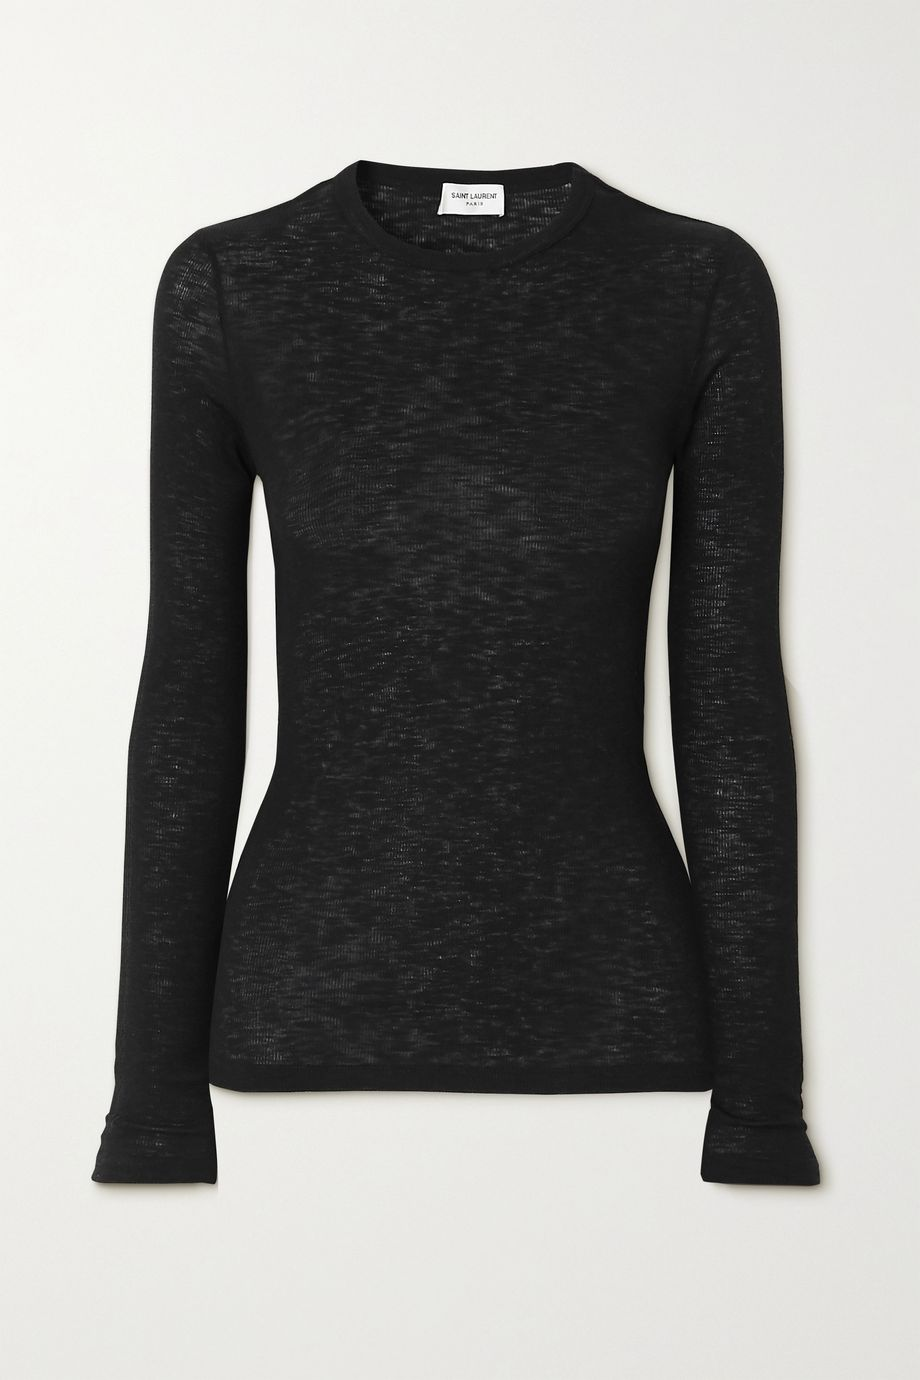 SAINT LAURENT Ribbed cotton-jersey top